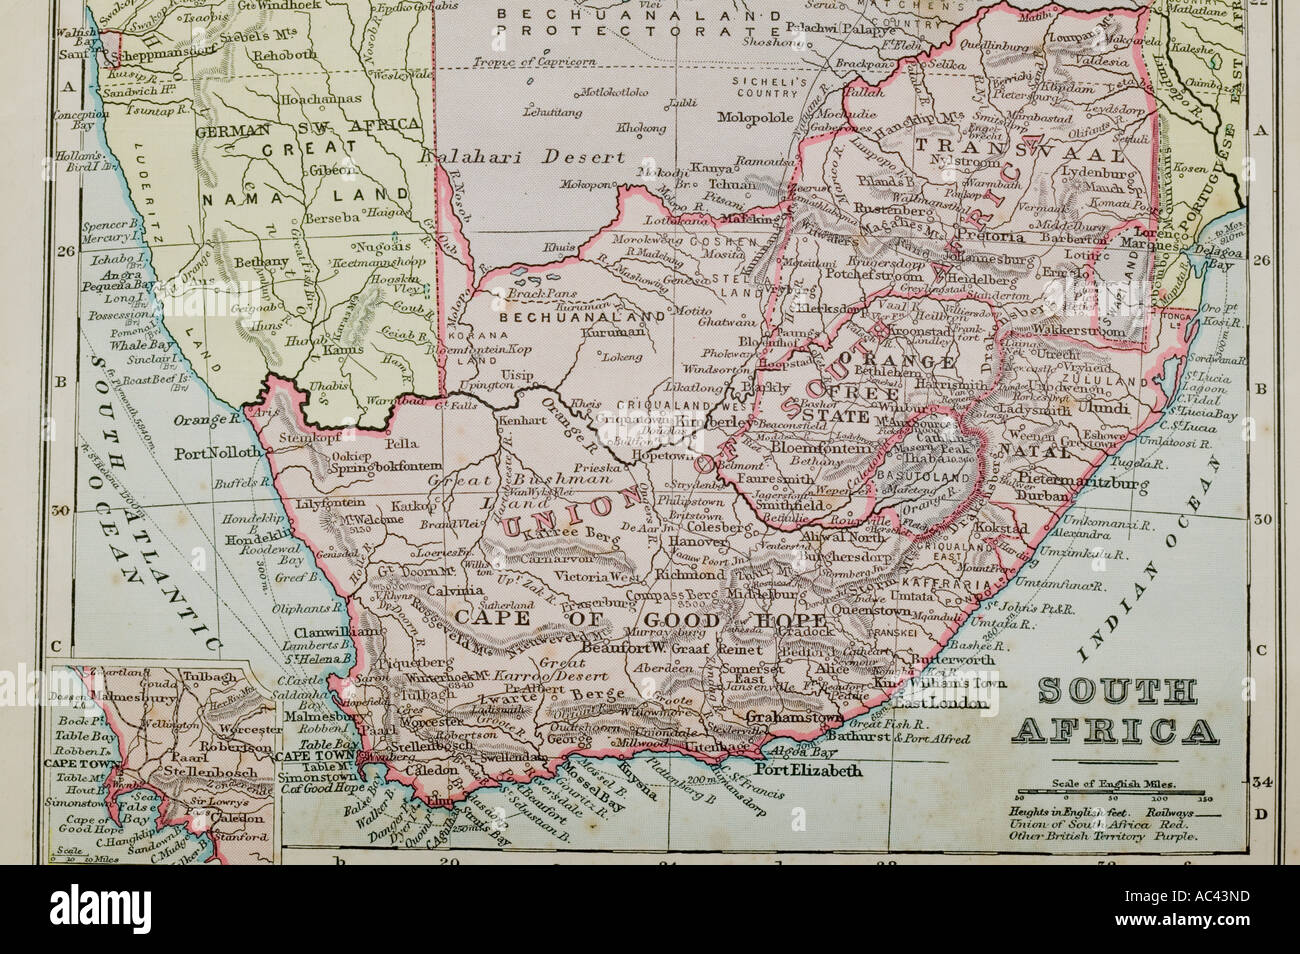 a 100 year old map of South Africa showing old boundaries Stock Photo